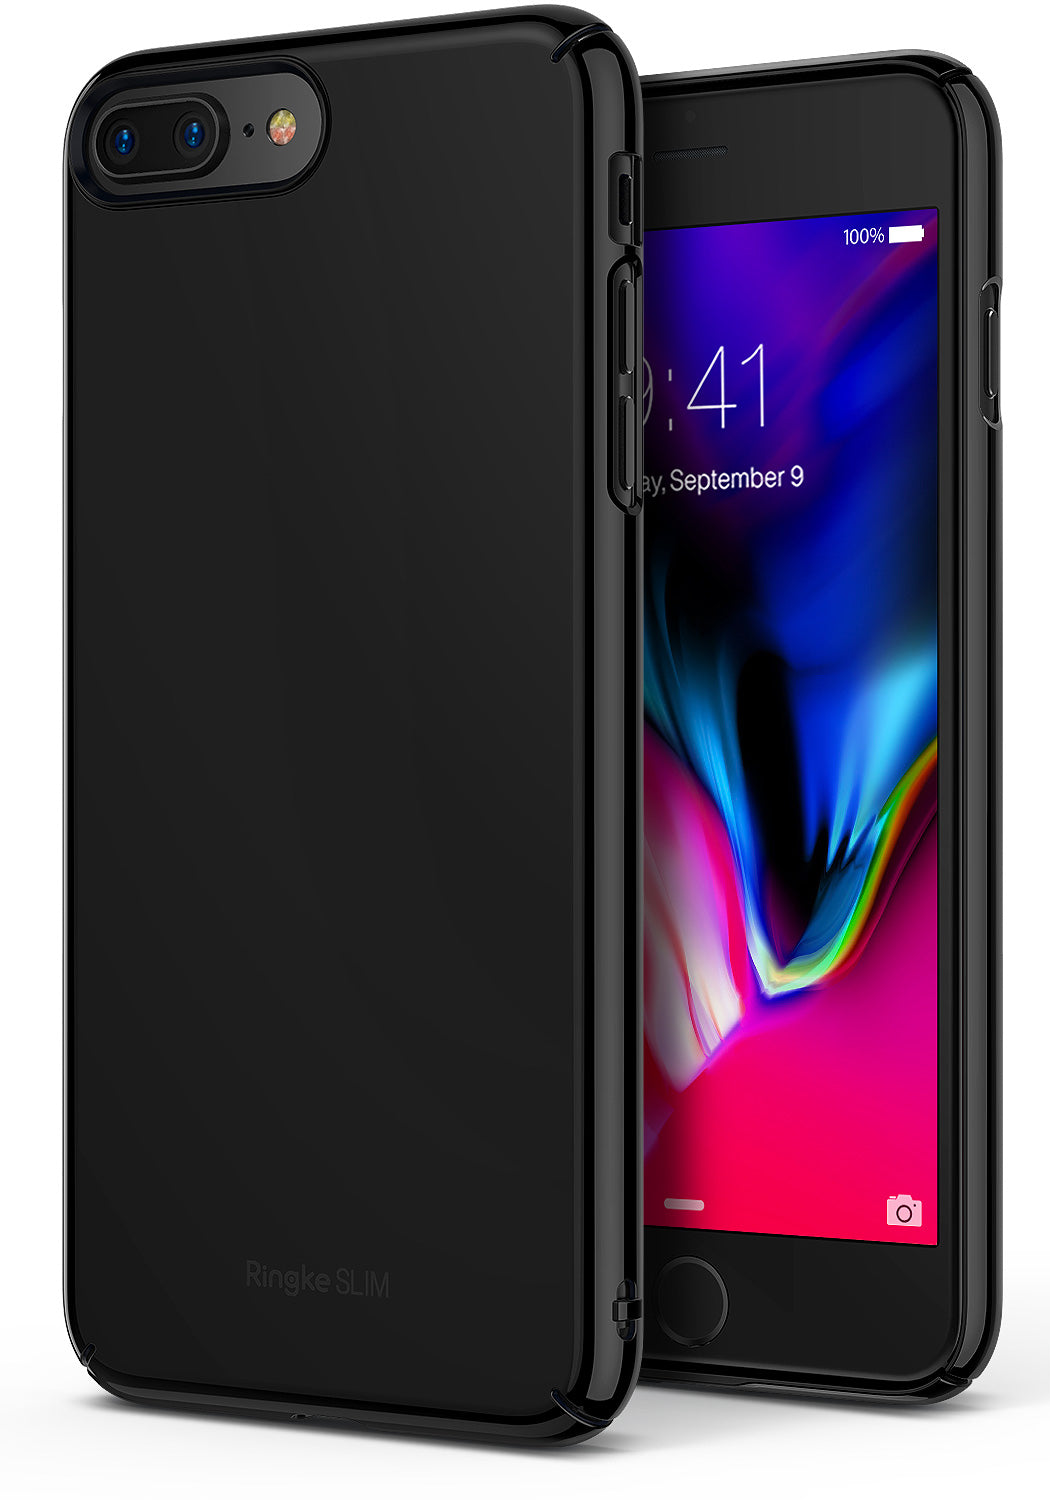 ringke slim hard pc thin case cover for iphone 7 plus 8 plus main gloss black